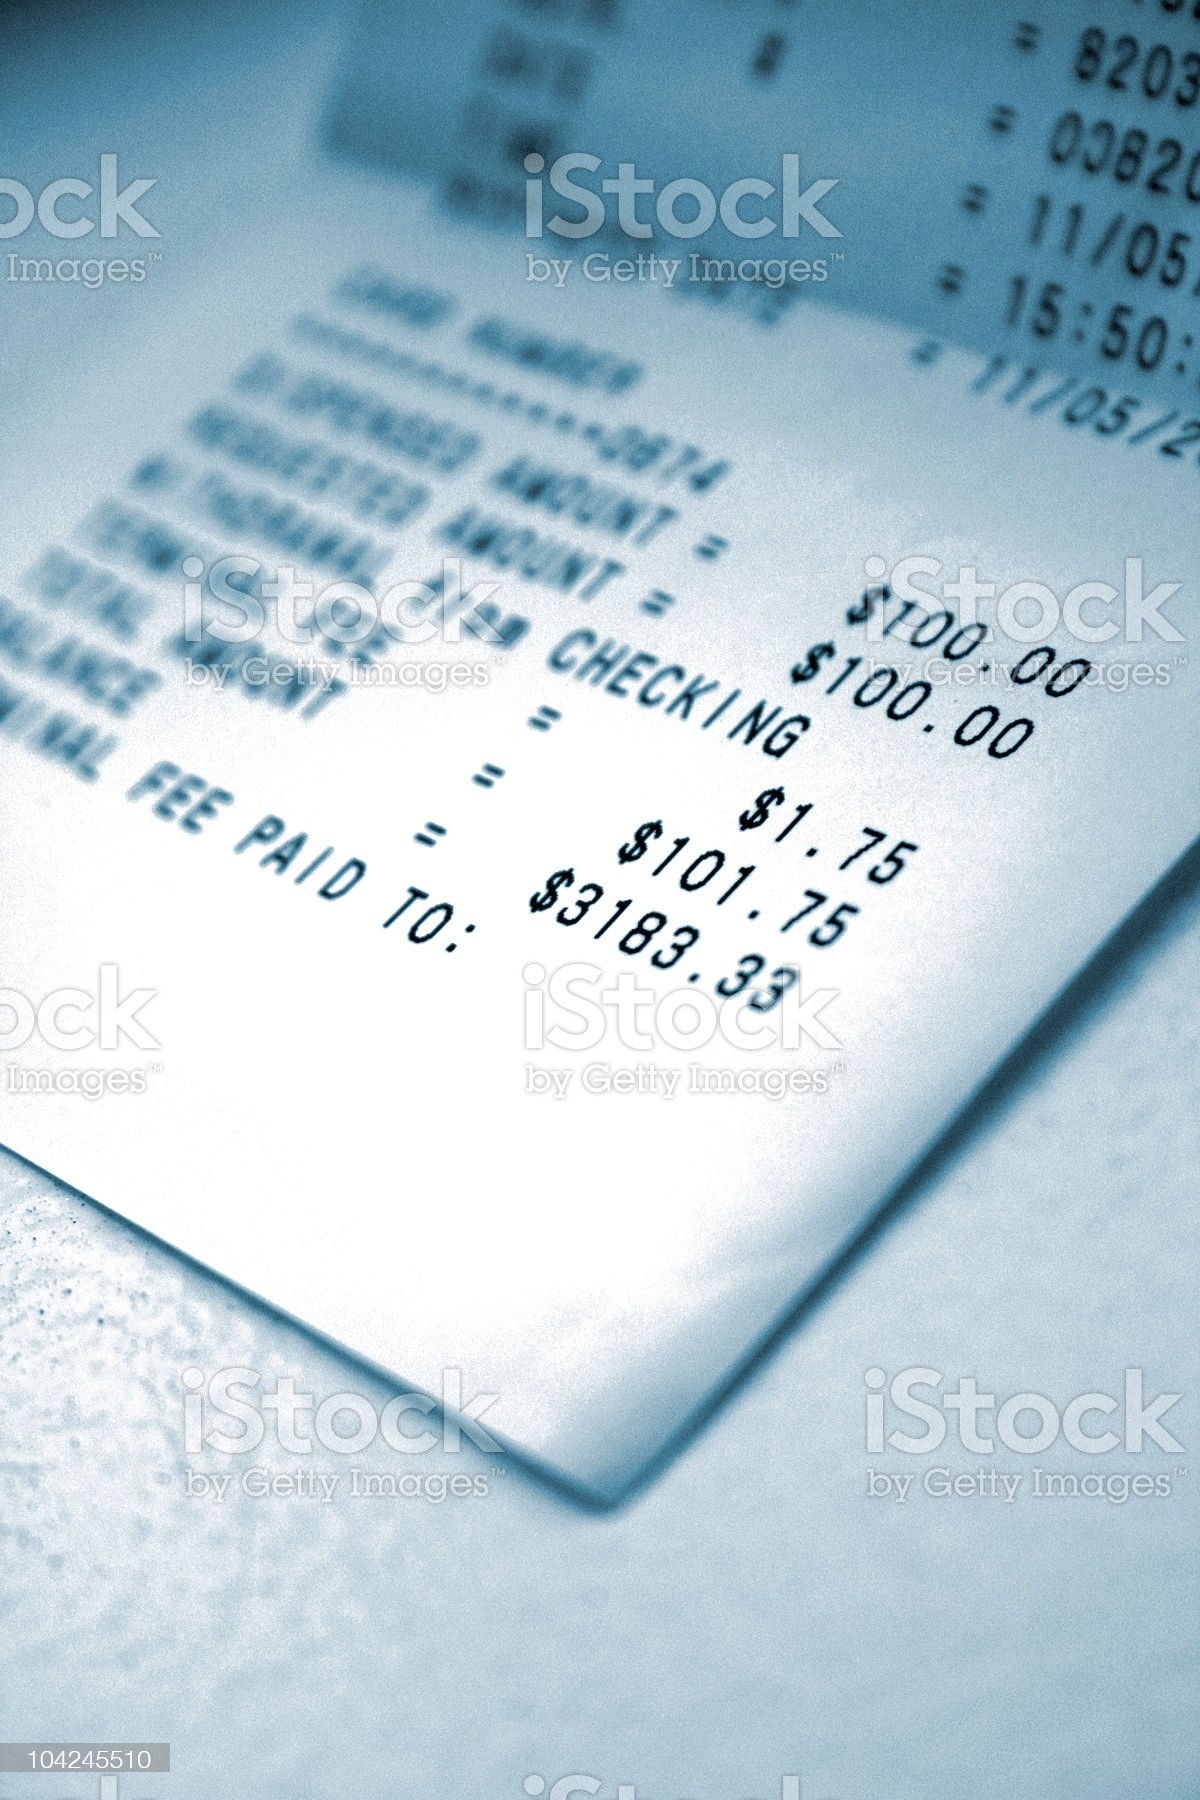 ATM Receipt With Transaction Fee - Close Up royalty-free stock photo